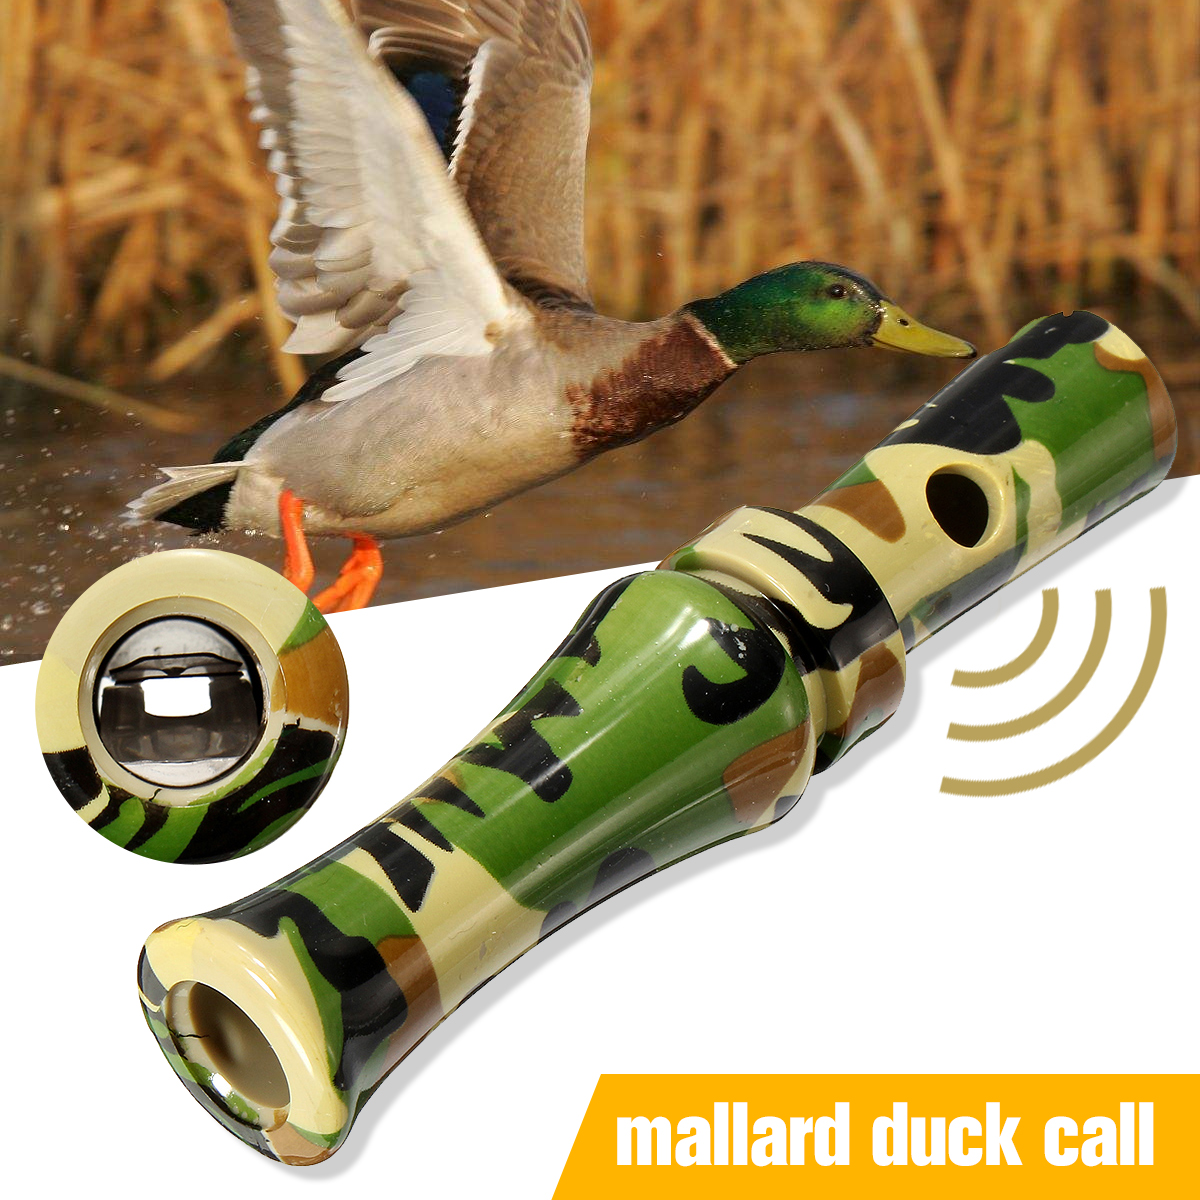 SGODDE Plastic Camouflage Duck Pheasant Mallard Hunting Call Caller Hunting Decoys Entice Wild Duck Closer for a Better Shot wholesale spain hunting duck decoys remote control 6v mallard drake decoy camouflage duck hunting from xilei